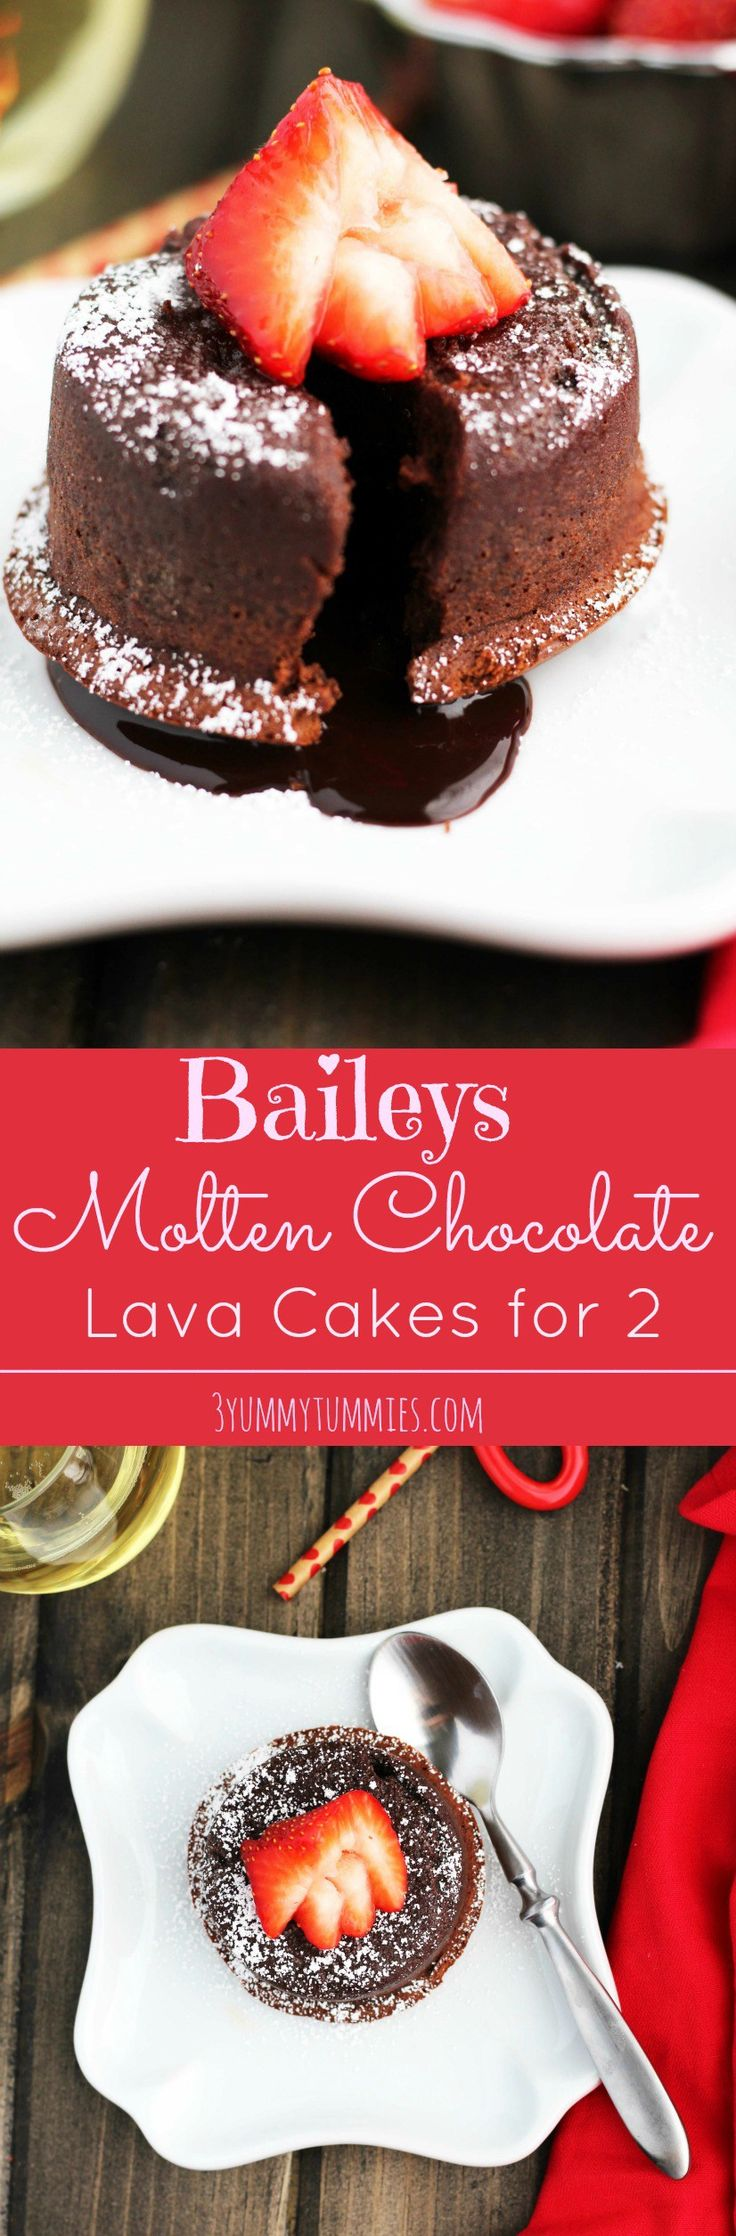 WOW...this is so delicious with crisp outer edges and a gooey inside!  The perfect Valentine's Day dessert for 2 with the added bonus of Baileys.: